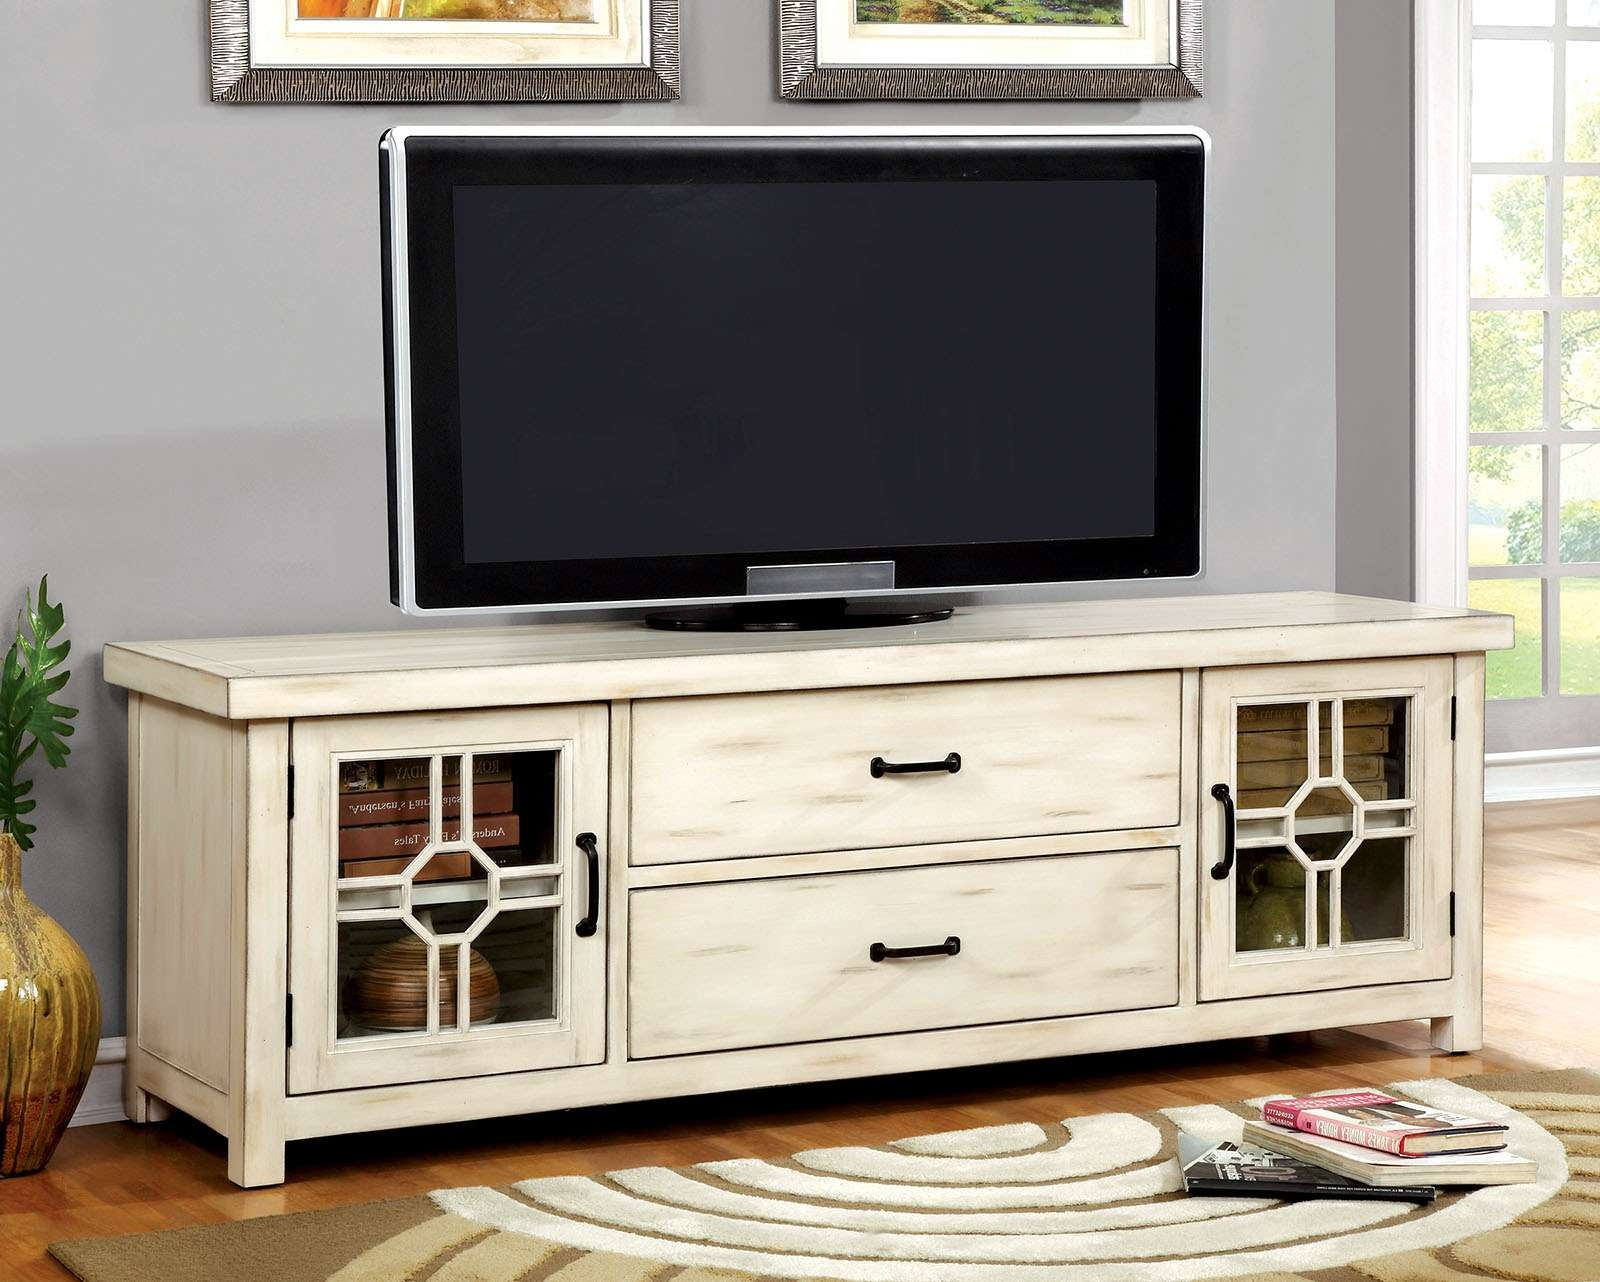 Ideas For Build Rustic Tv Stand — Cabinets, Beds, Sofas And In Rustic Tv Cabinets (View 20 of 20)